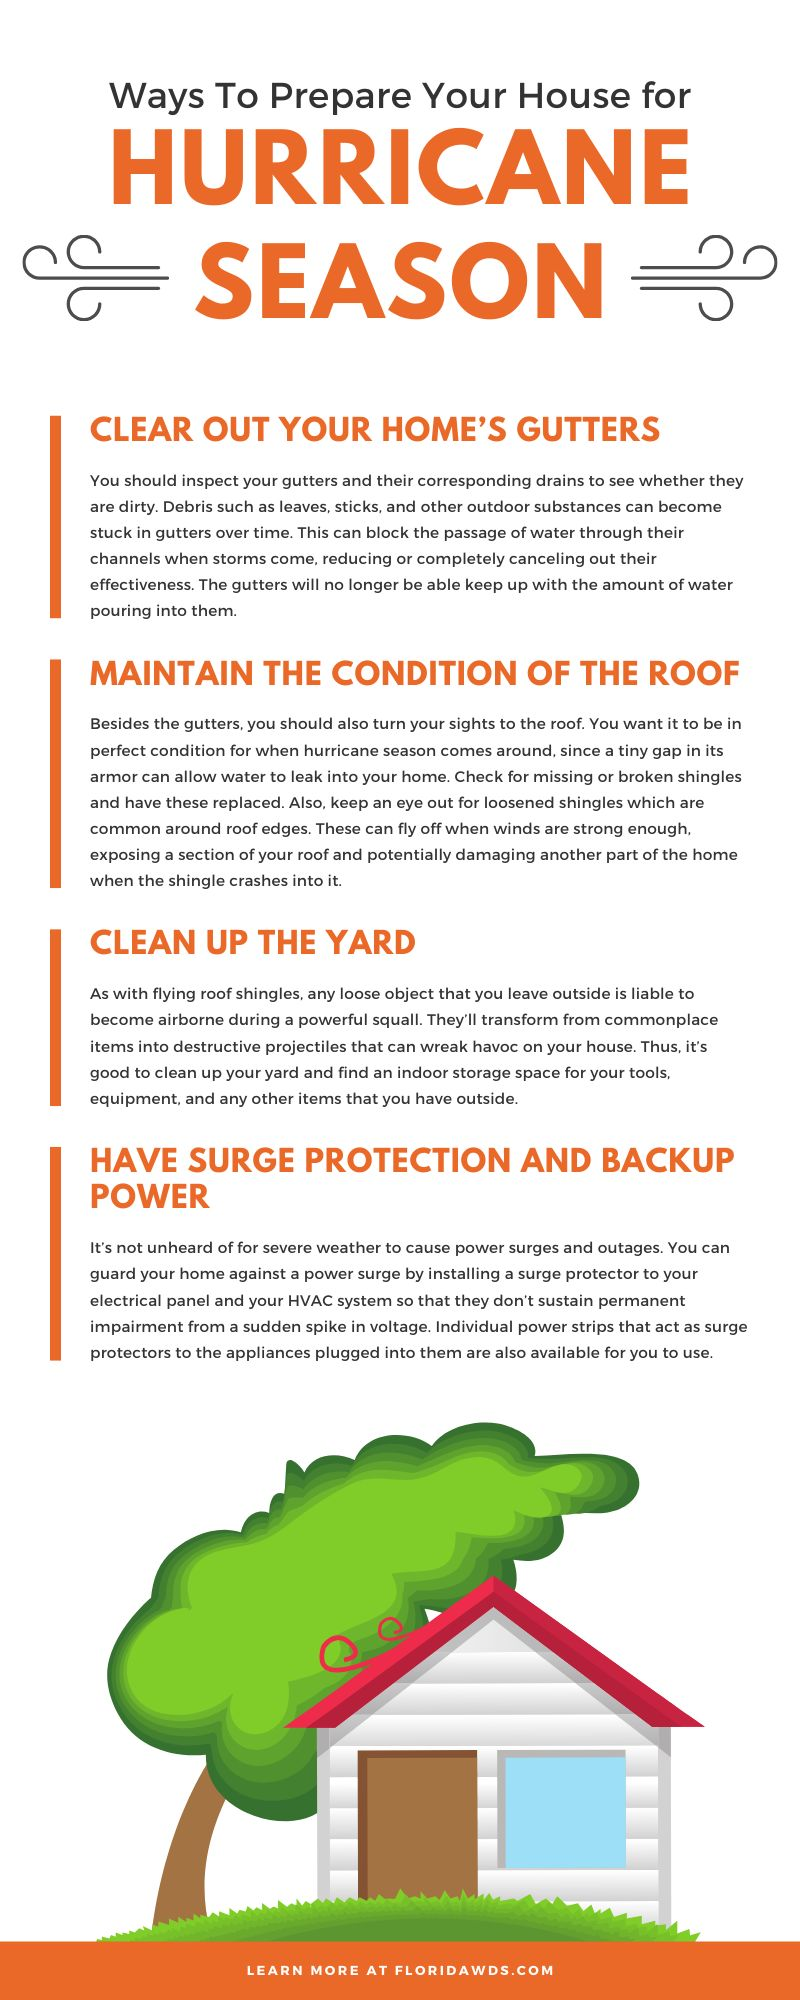 Ways To Prepare Your House for Hurricane Season